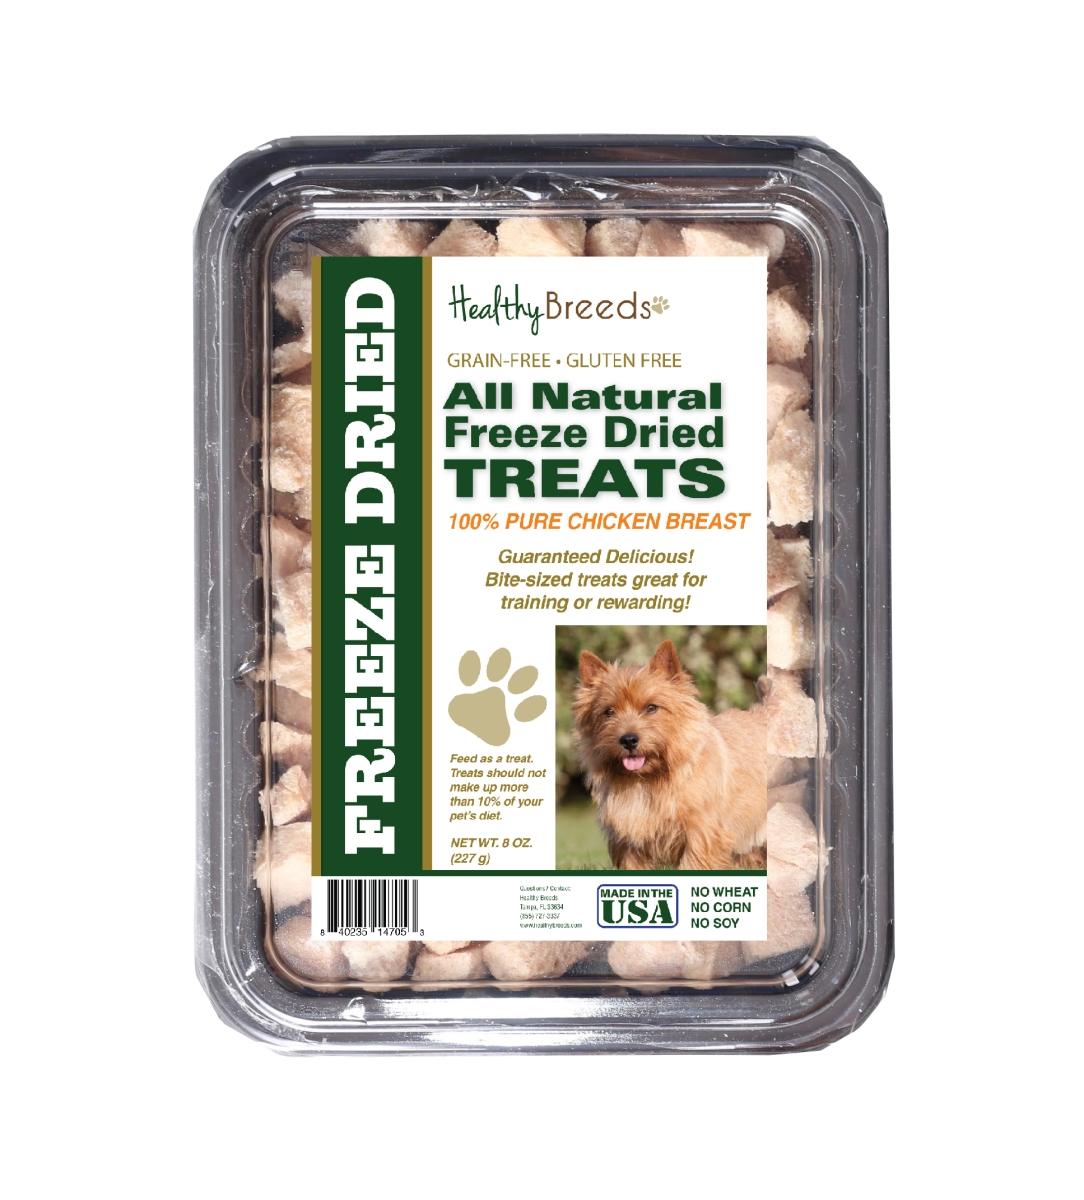 Healthy Breeds 840235147053 8 oz Norwich Terrier All Natural Freeze Dried Treats Chicken Breast